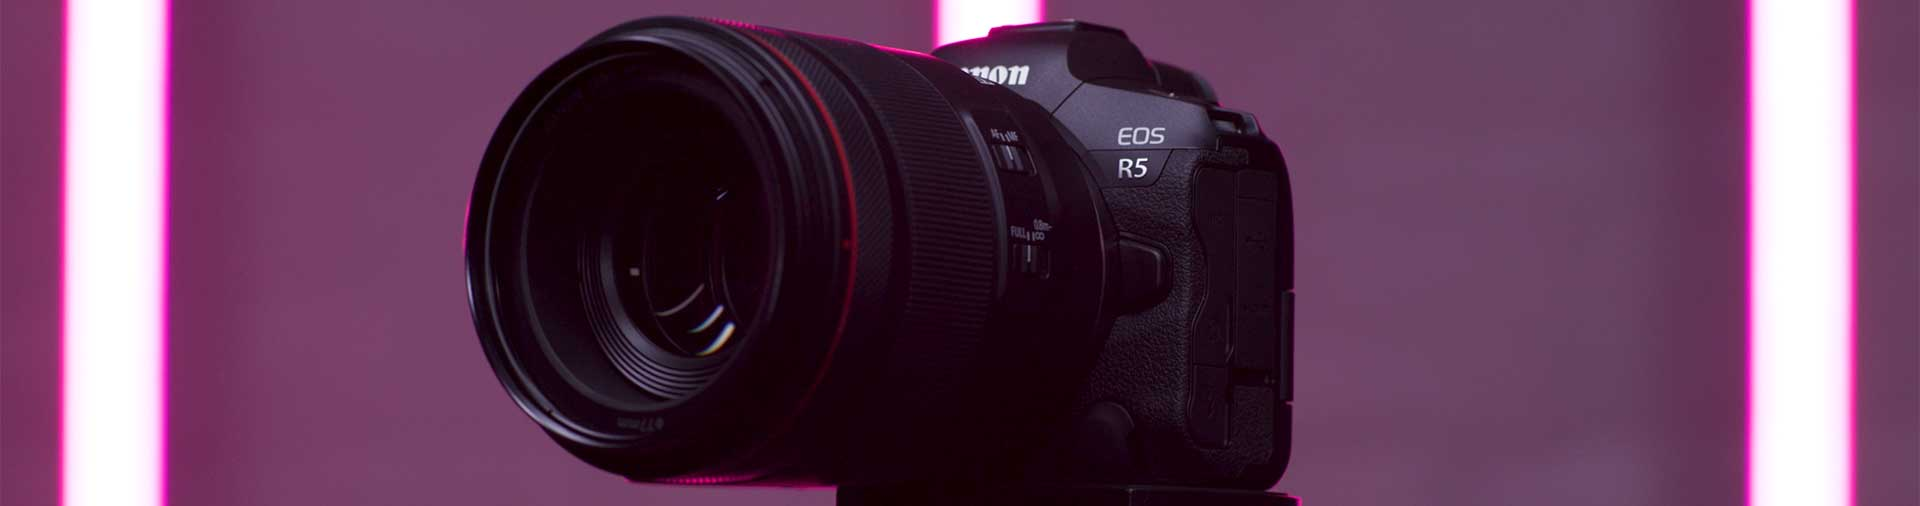 the-canon-eos-r5-on-a-tripod-with-purple-background-by-daniel-congerton